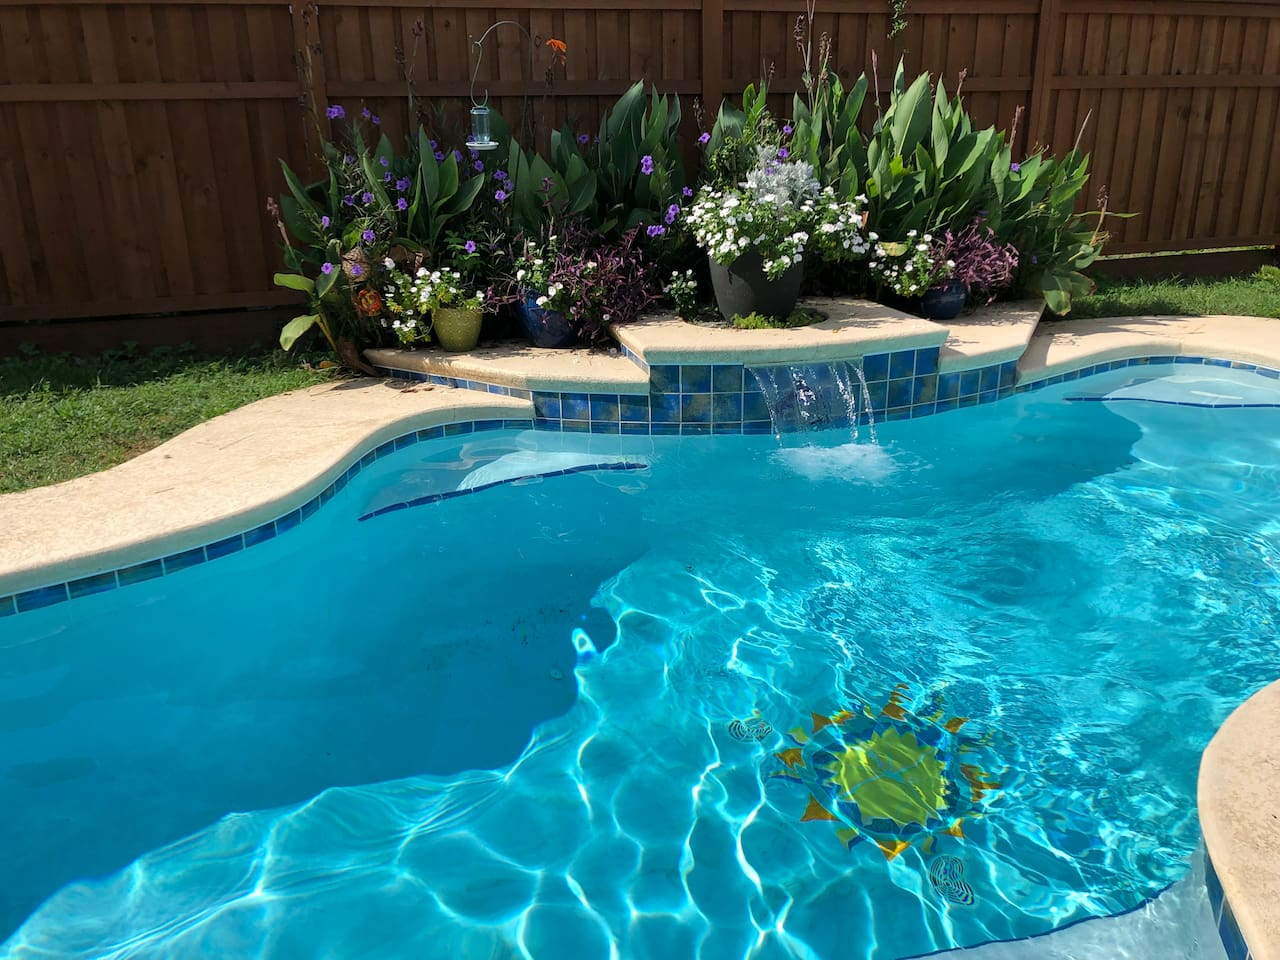 Pool: bigger than a plunge but not a lap pool. About 25' long.